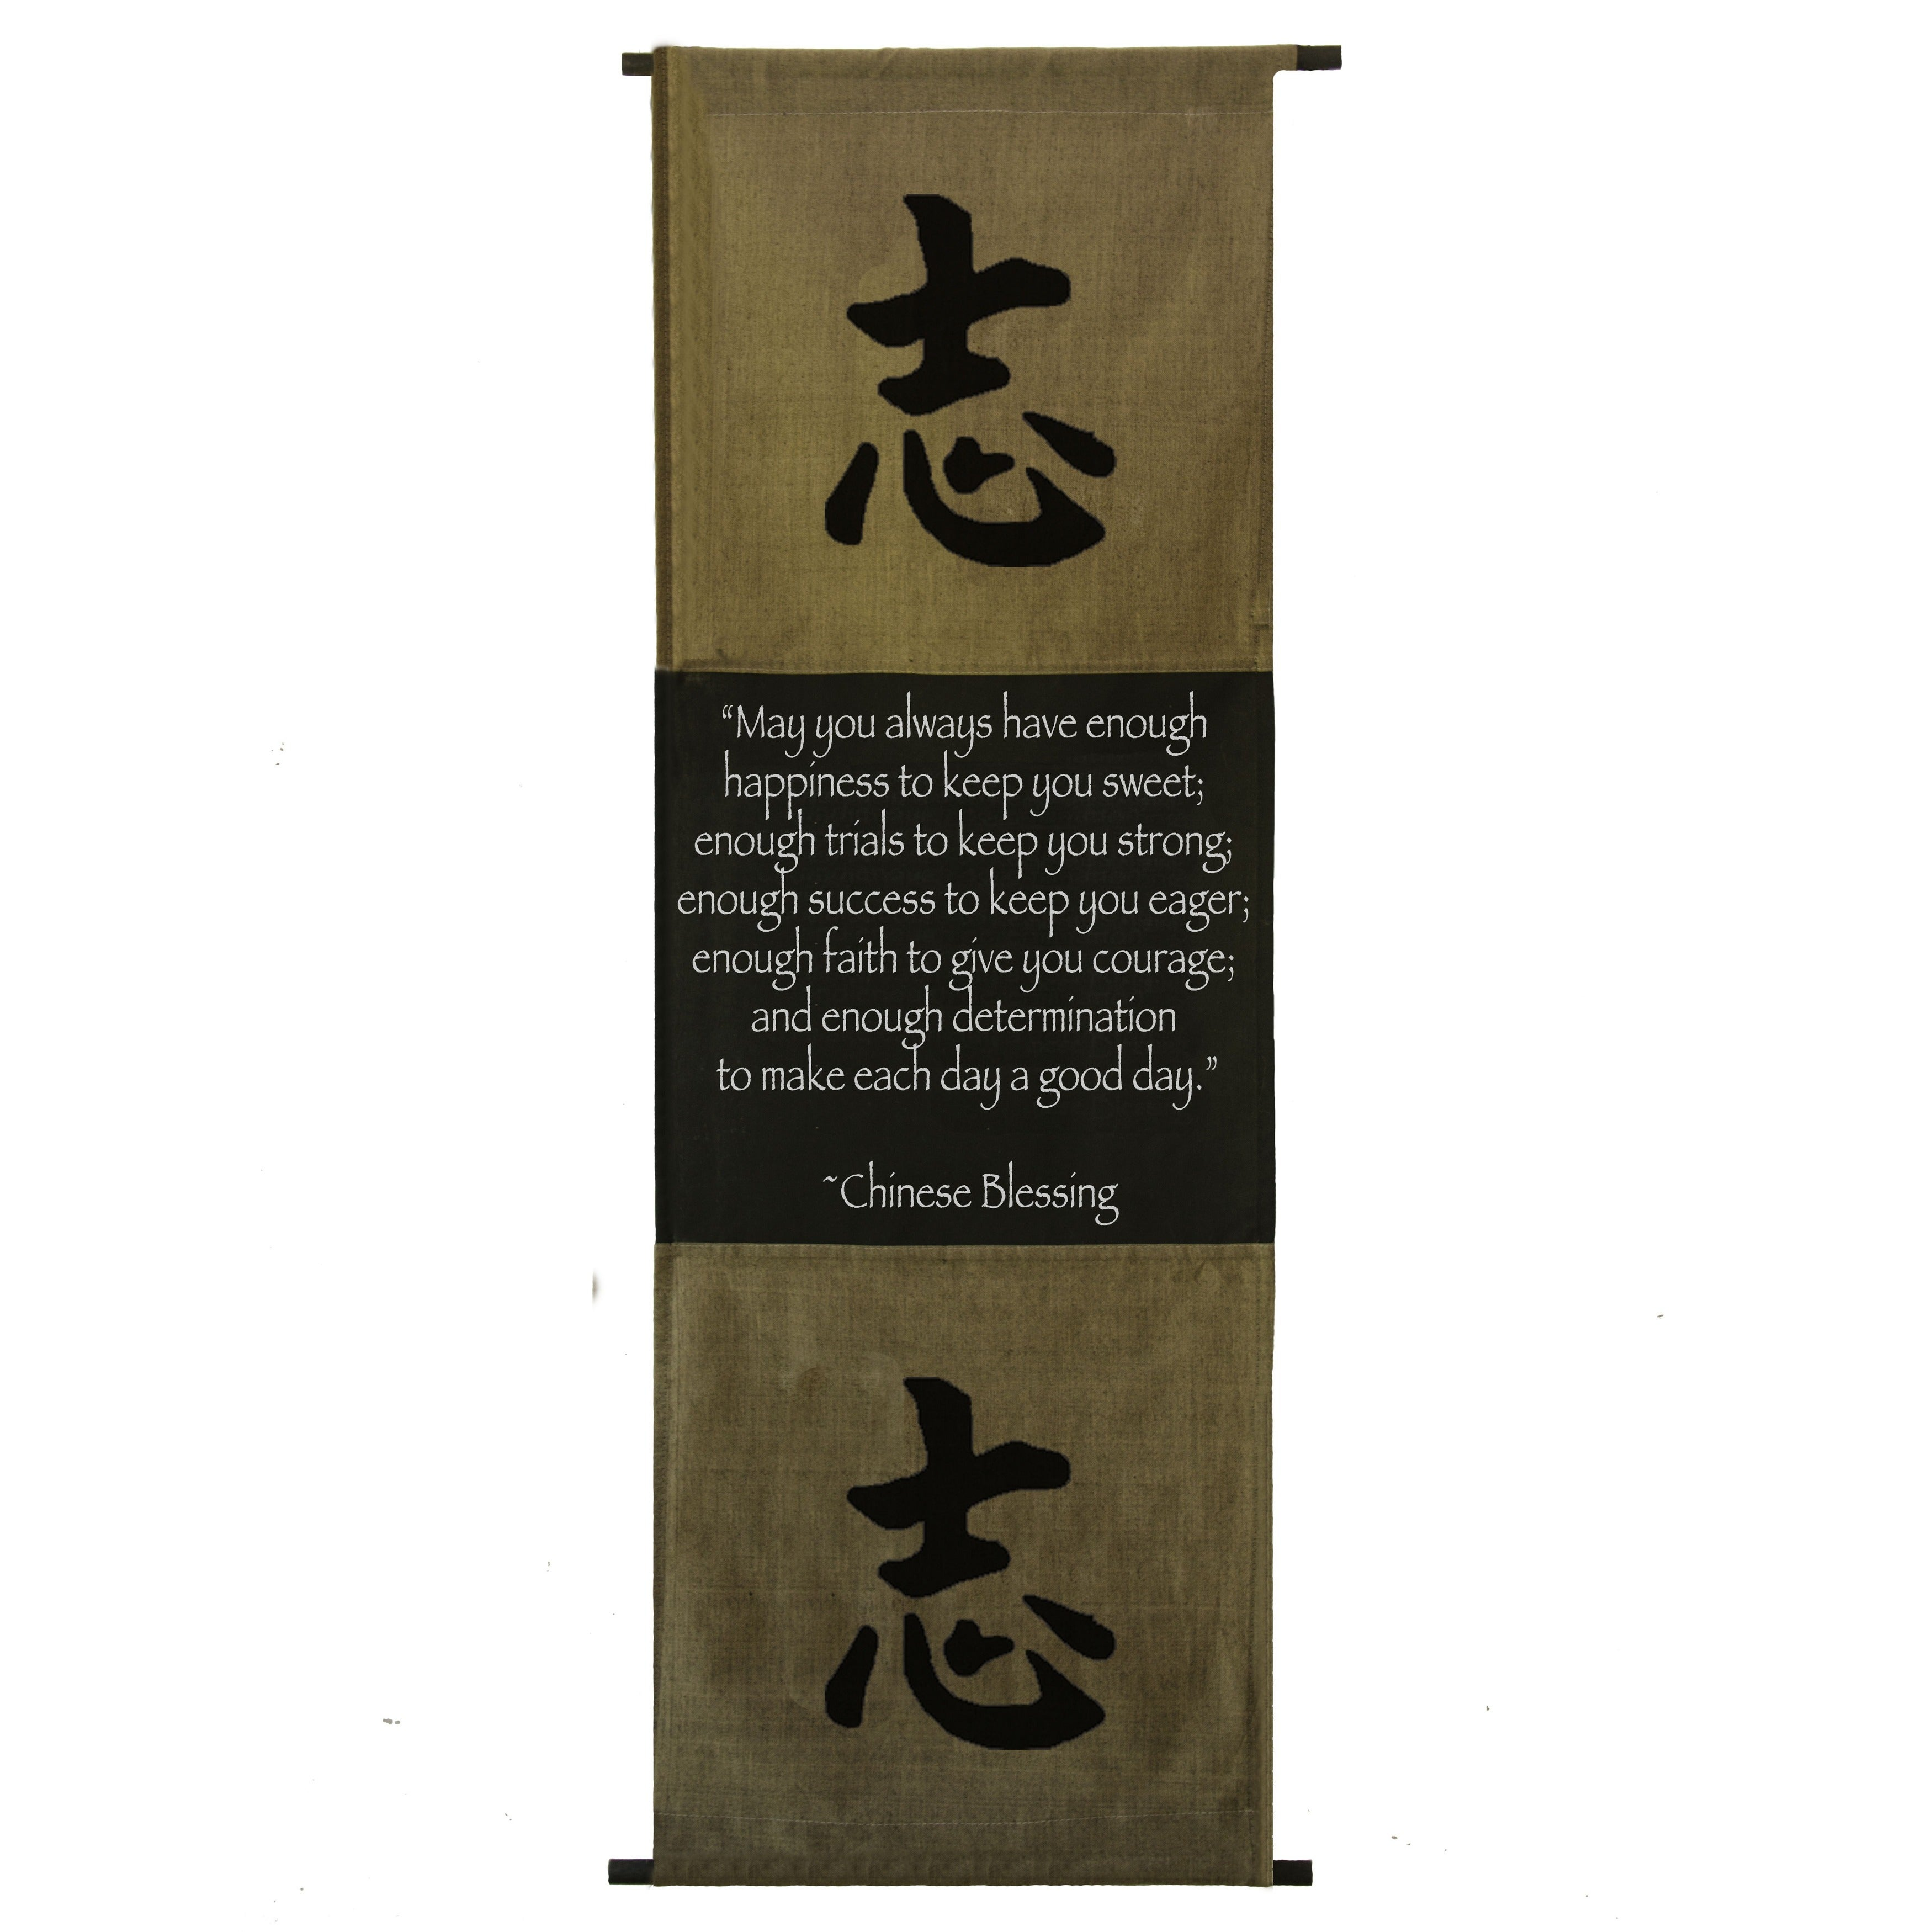 Cotton ambition chinese blessing scroll handmade in indonesia cotton ambition chinese blessing scroll handmade in indonesia free shipping on orders over 45 overstock 13000845 biocorpaavc Images